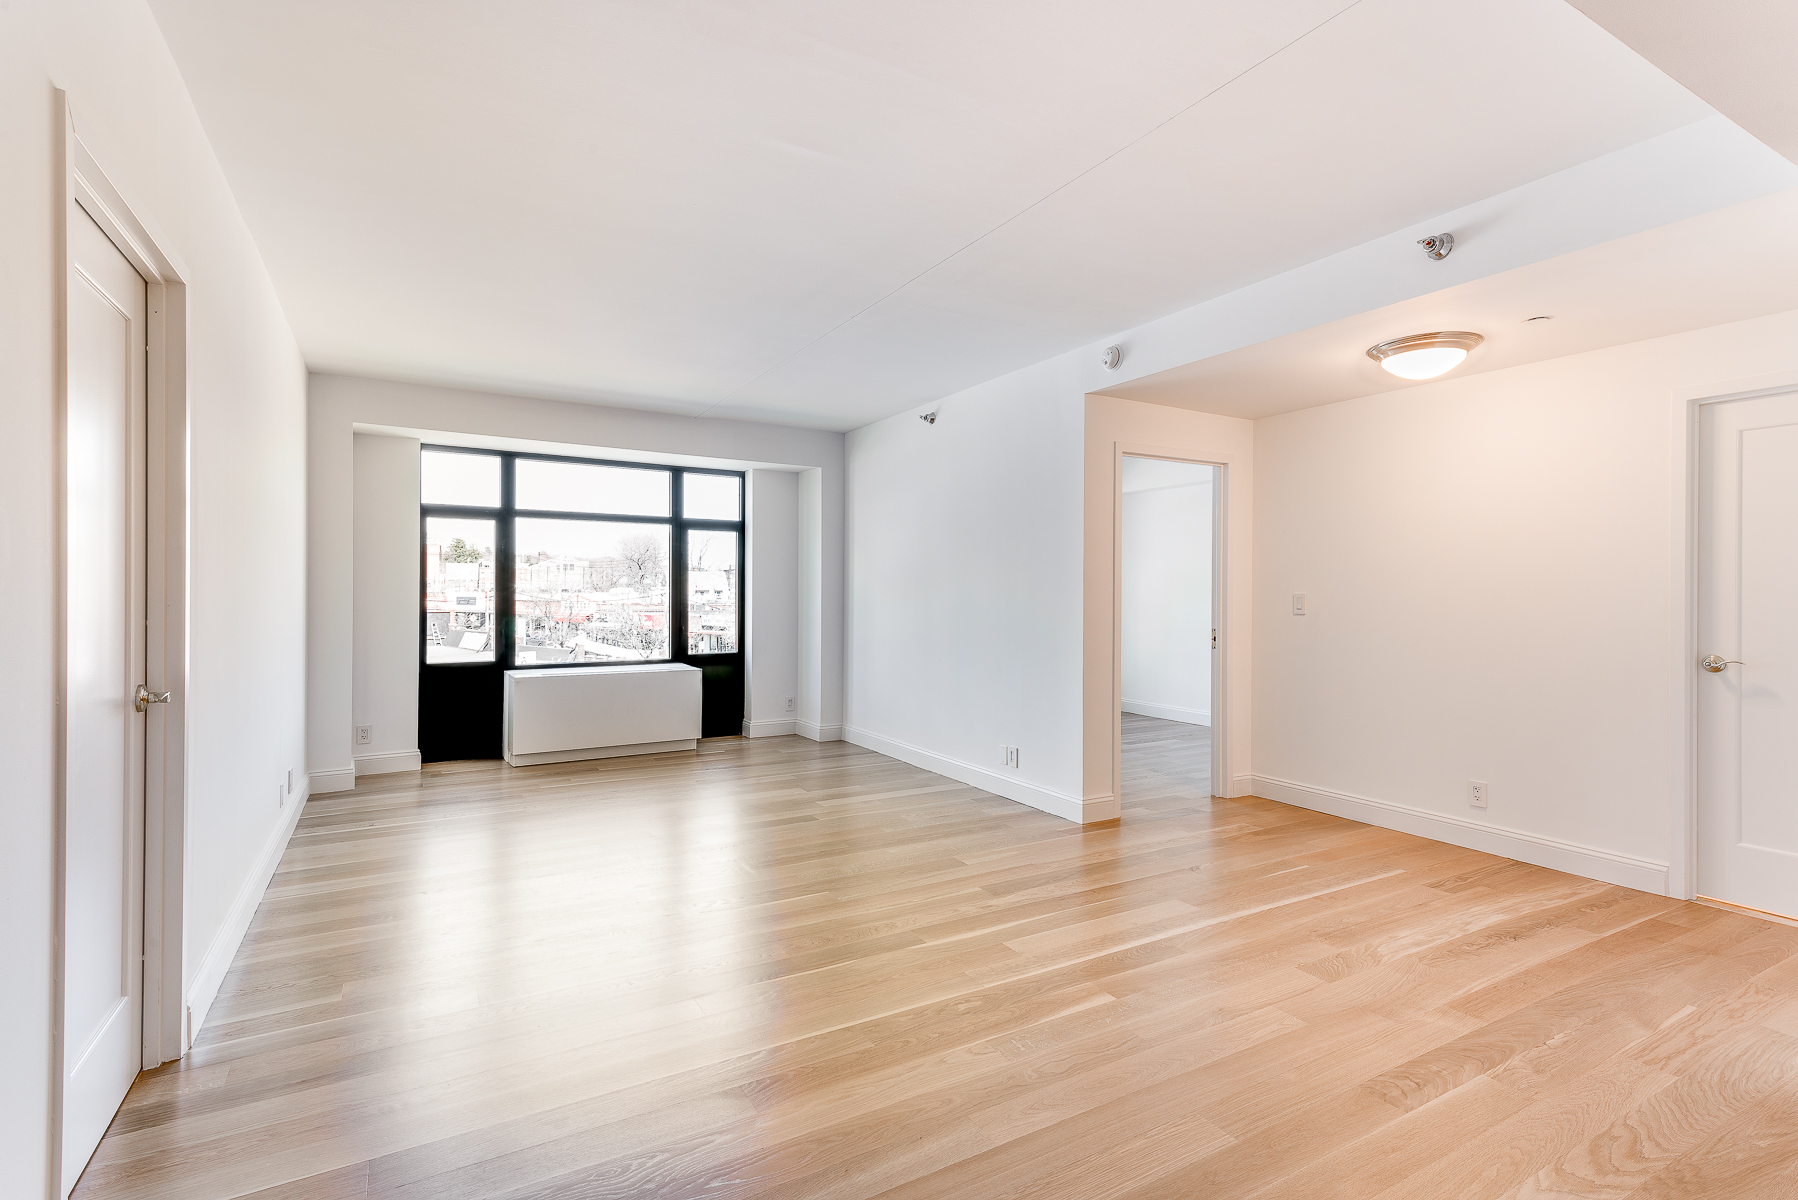 Condominium for Sale at NEW 3 BR CONDO IN PRIME LOCATION 3536 Cambridge Avenue 5E Riverdale, New York, 10463 United States